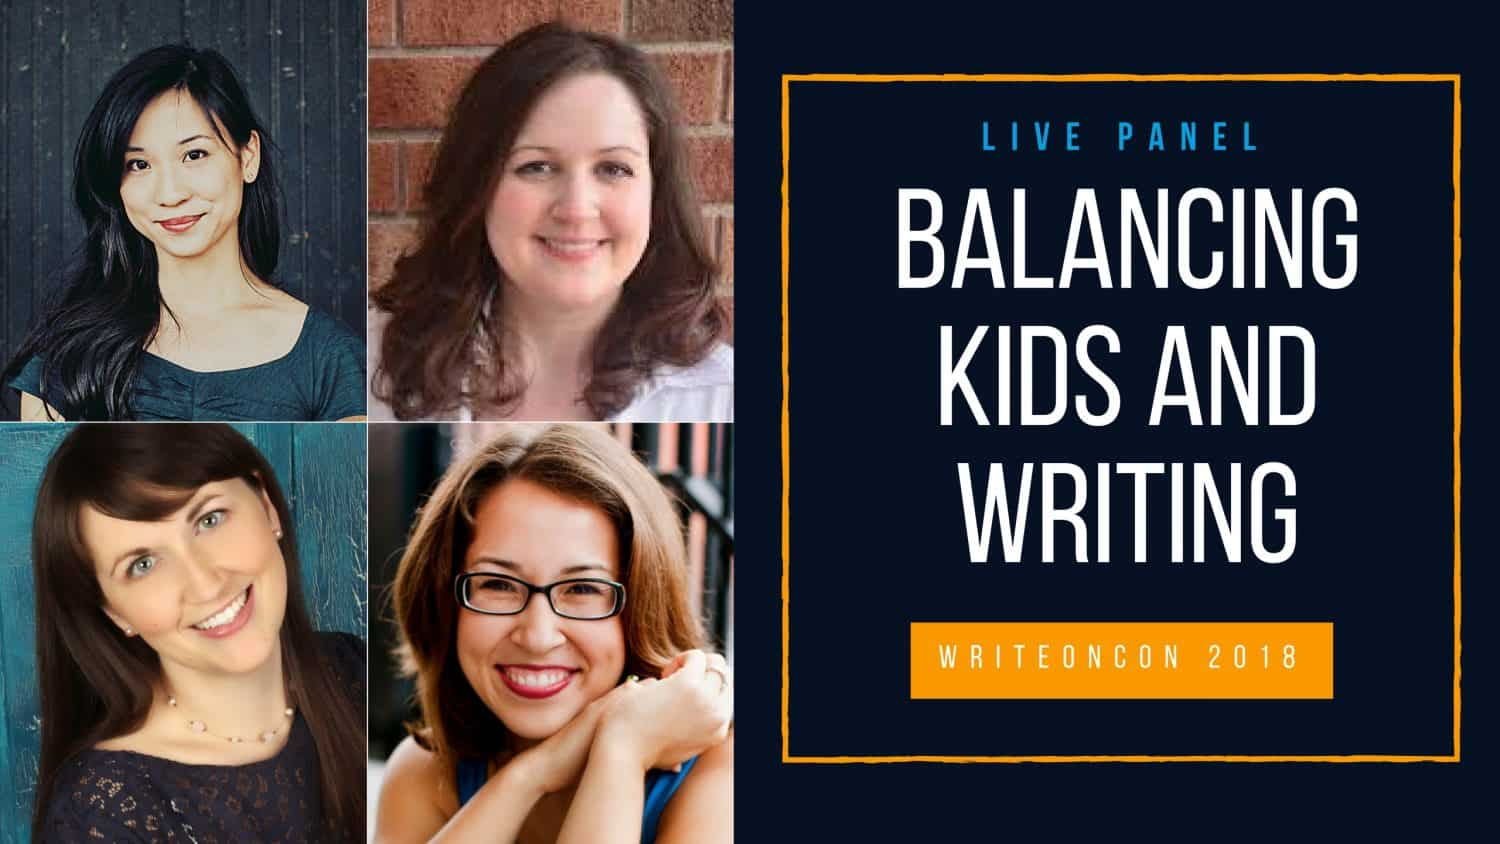 LIVE PANEL: Balancing Kids and Writing